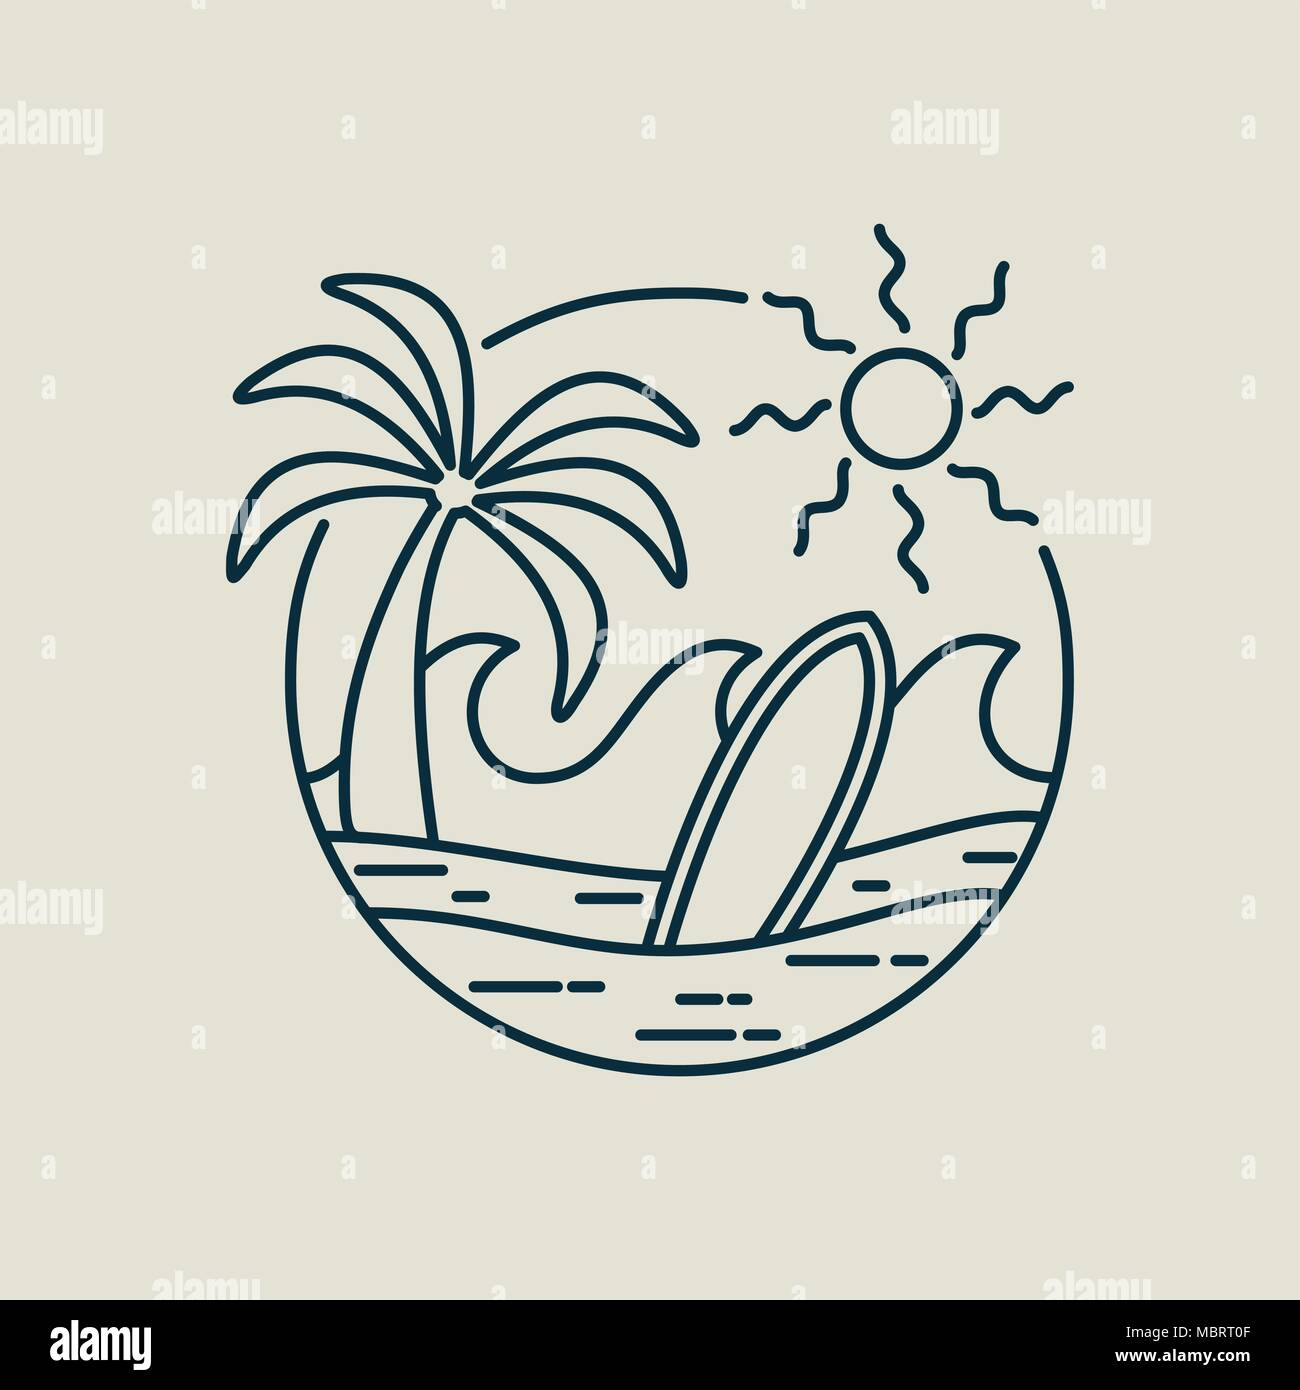 Surf line art stamp in modern flat style. Paradise beach illustration with palm tree, ocean waves and surfboard. EPS10 vector. - Stock Vector